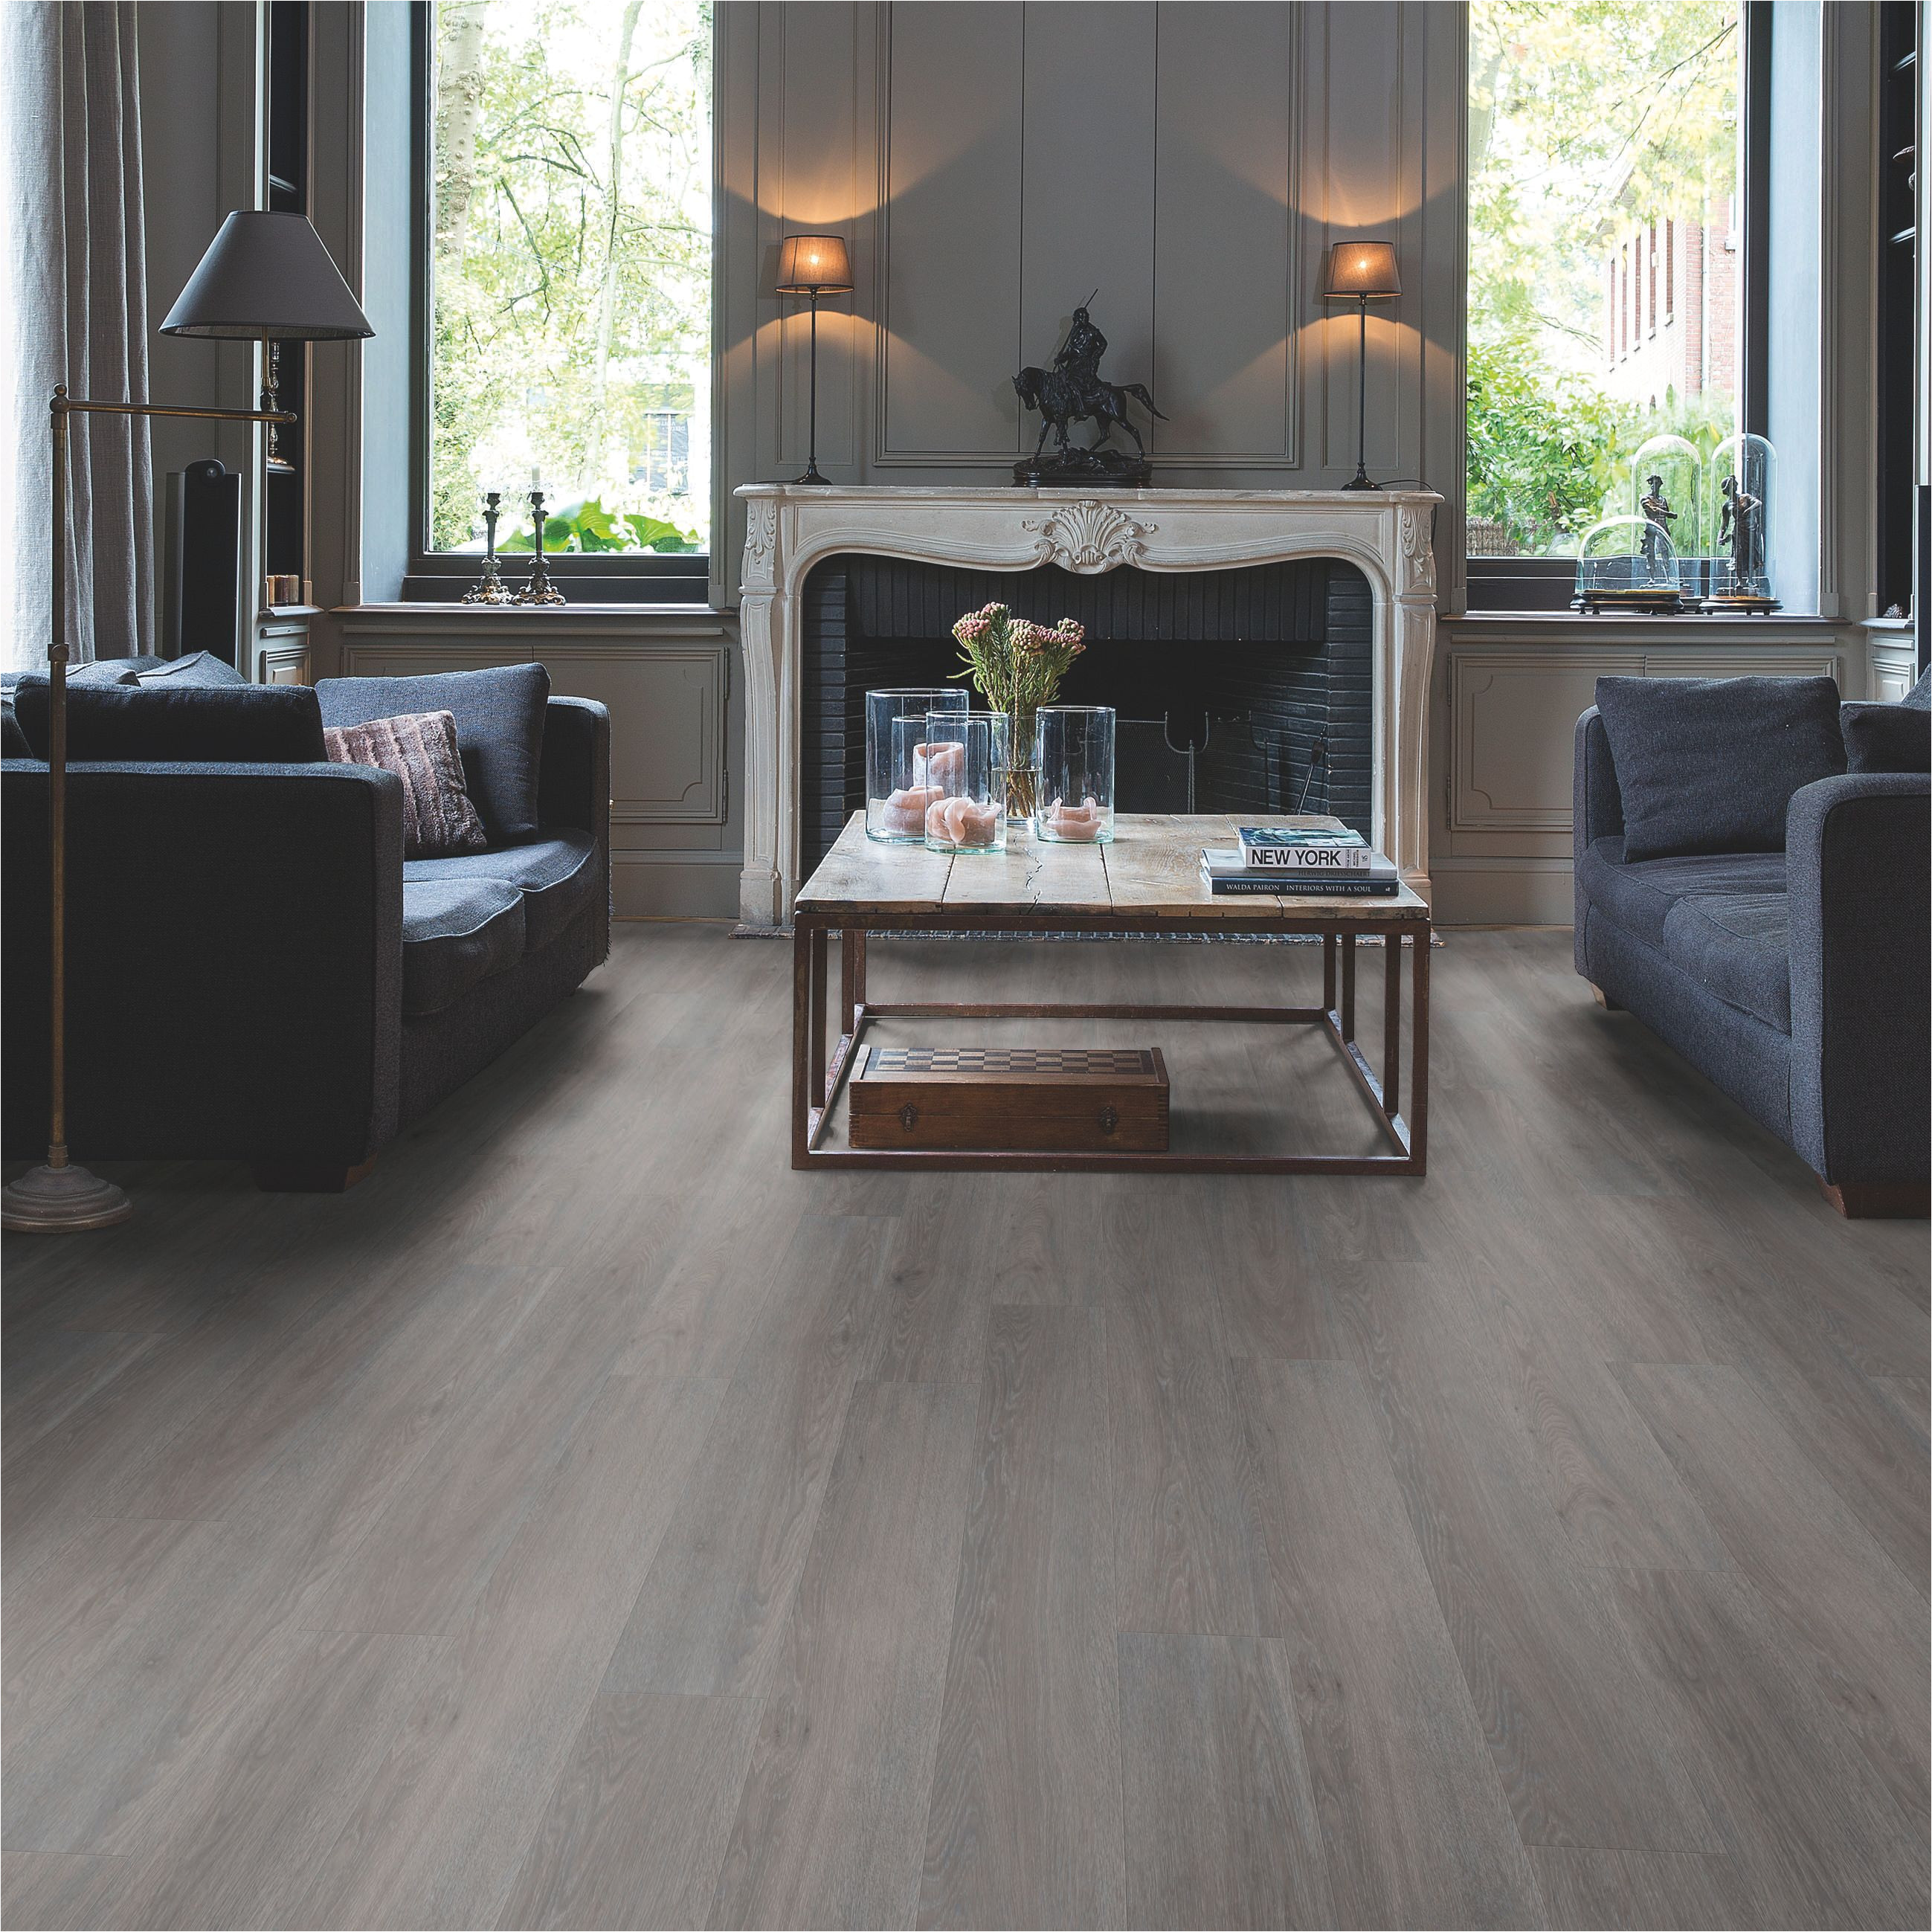 paso dark grey oak effect waterproof luxury vinyl flooring tile 2 105 ma pack departments diy at b q